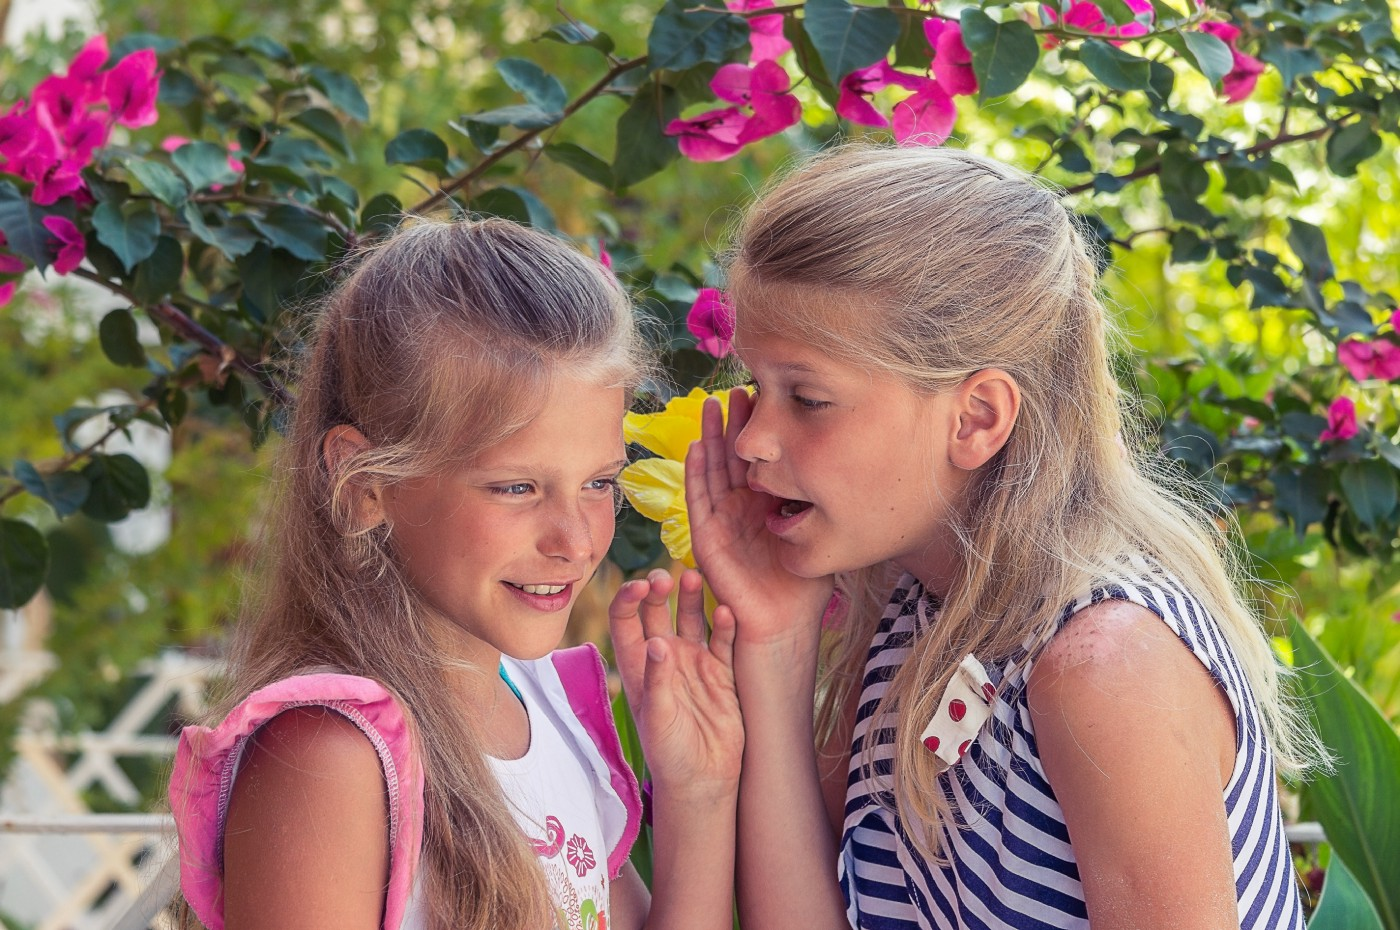 A girl whispering to her sister